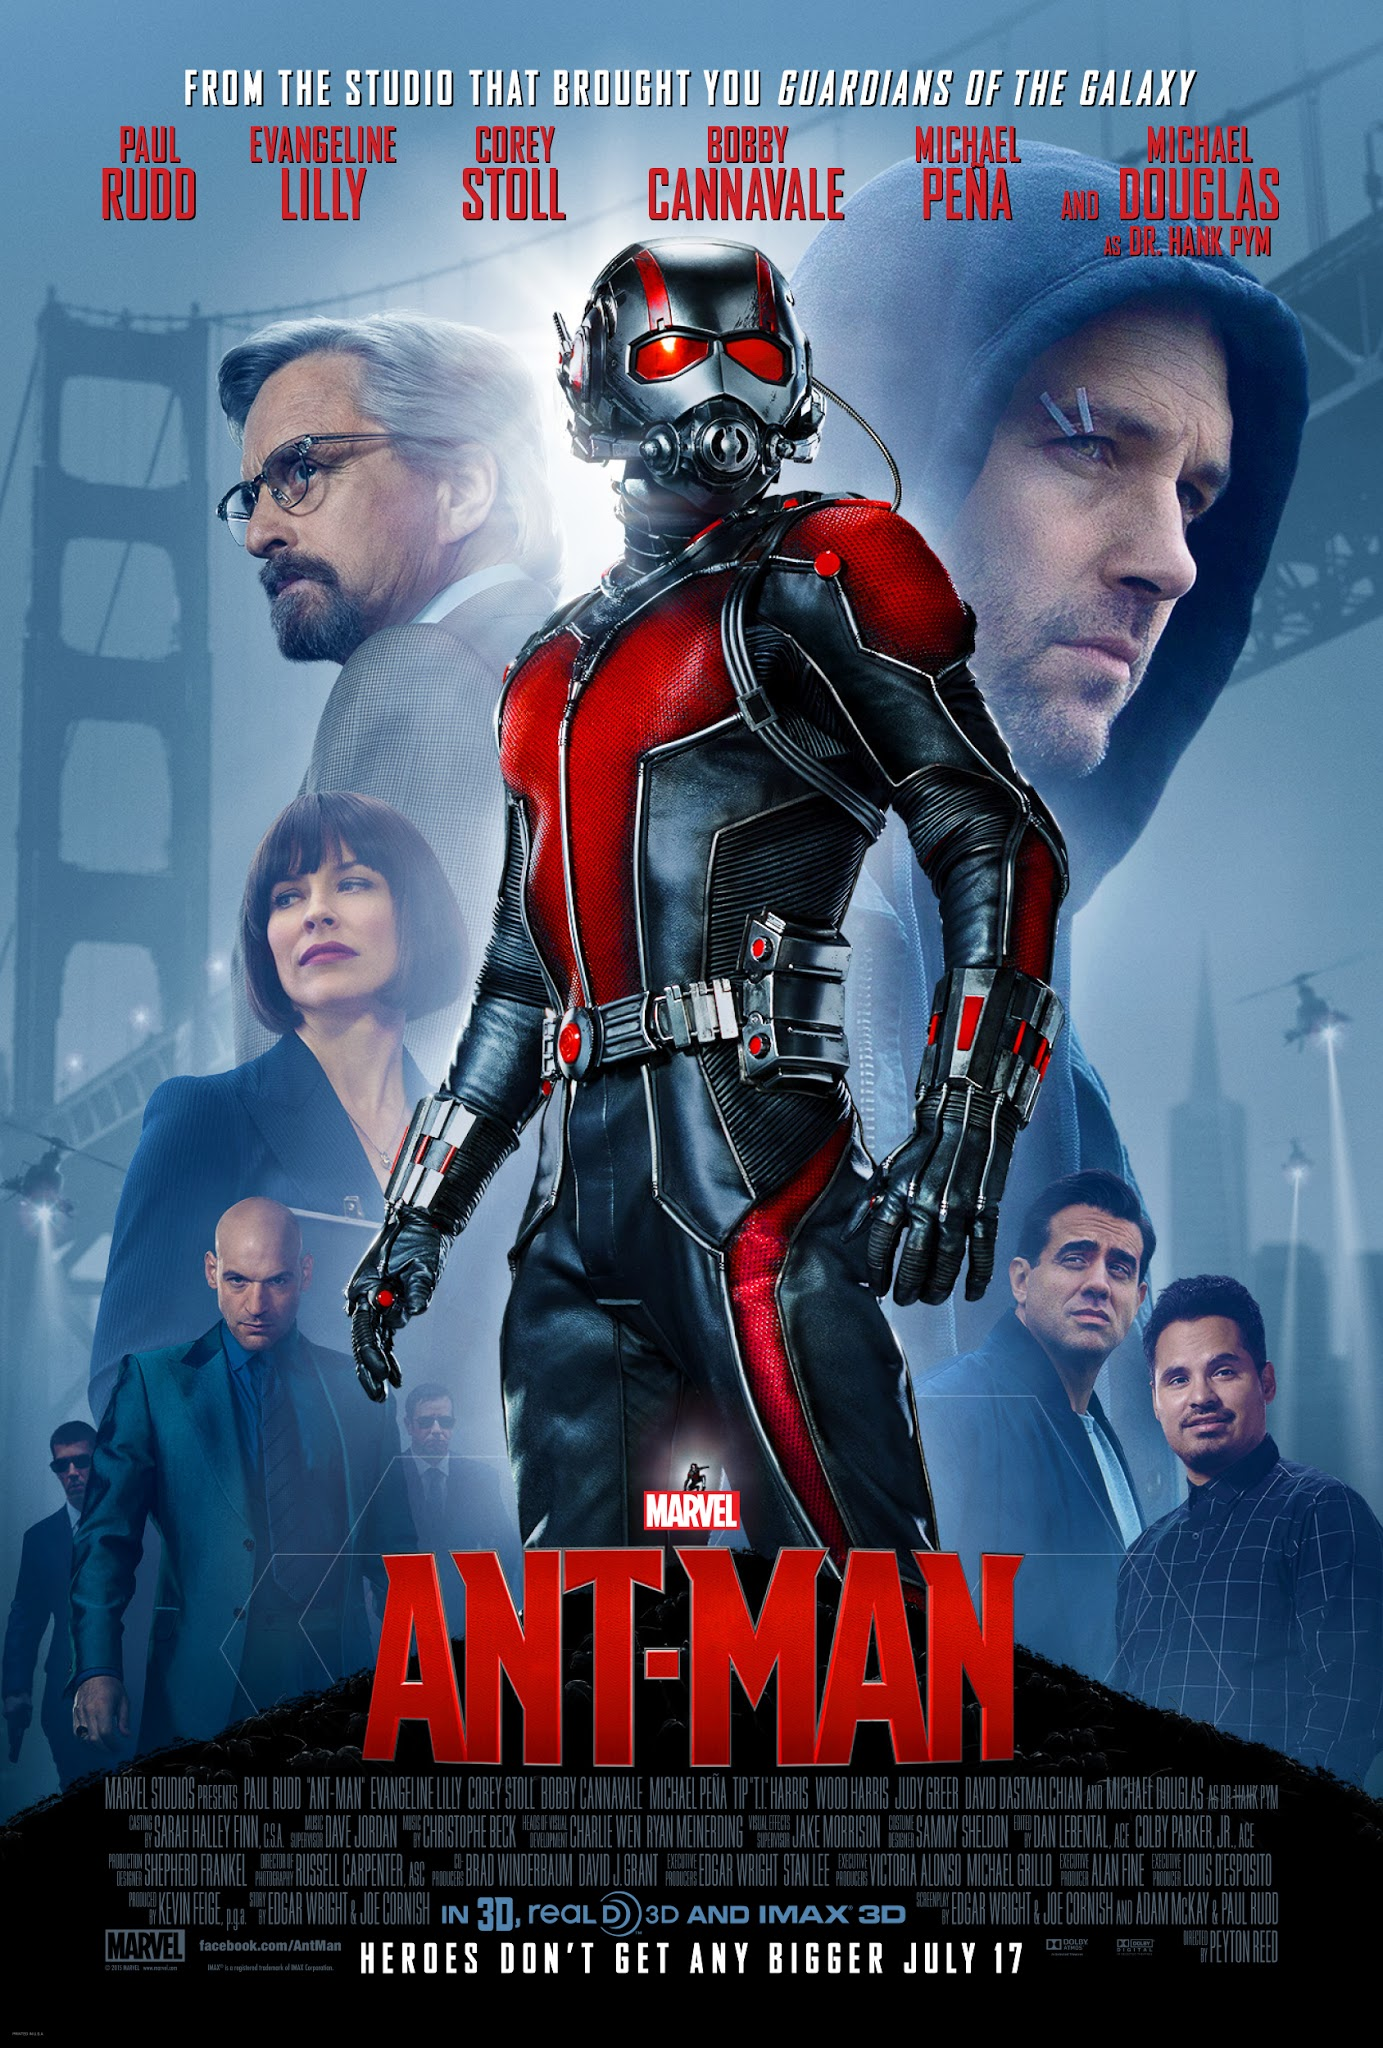 ant man film recenzja marvel plakat paul rudd